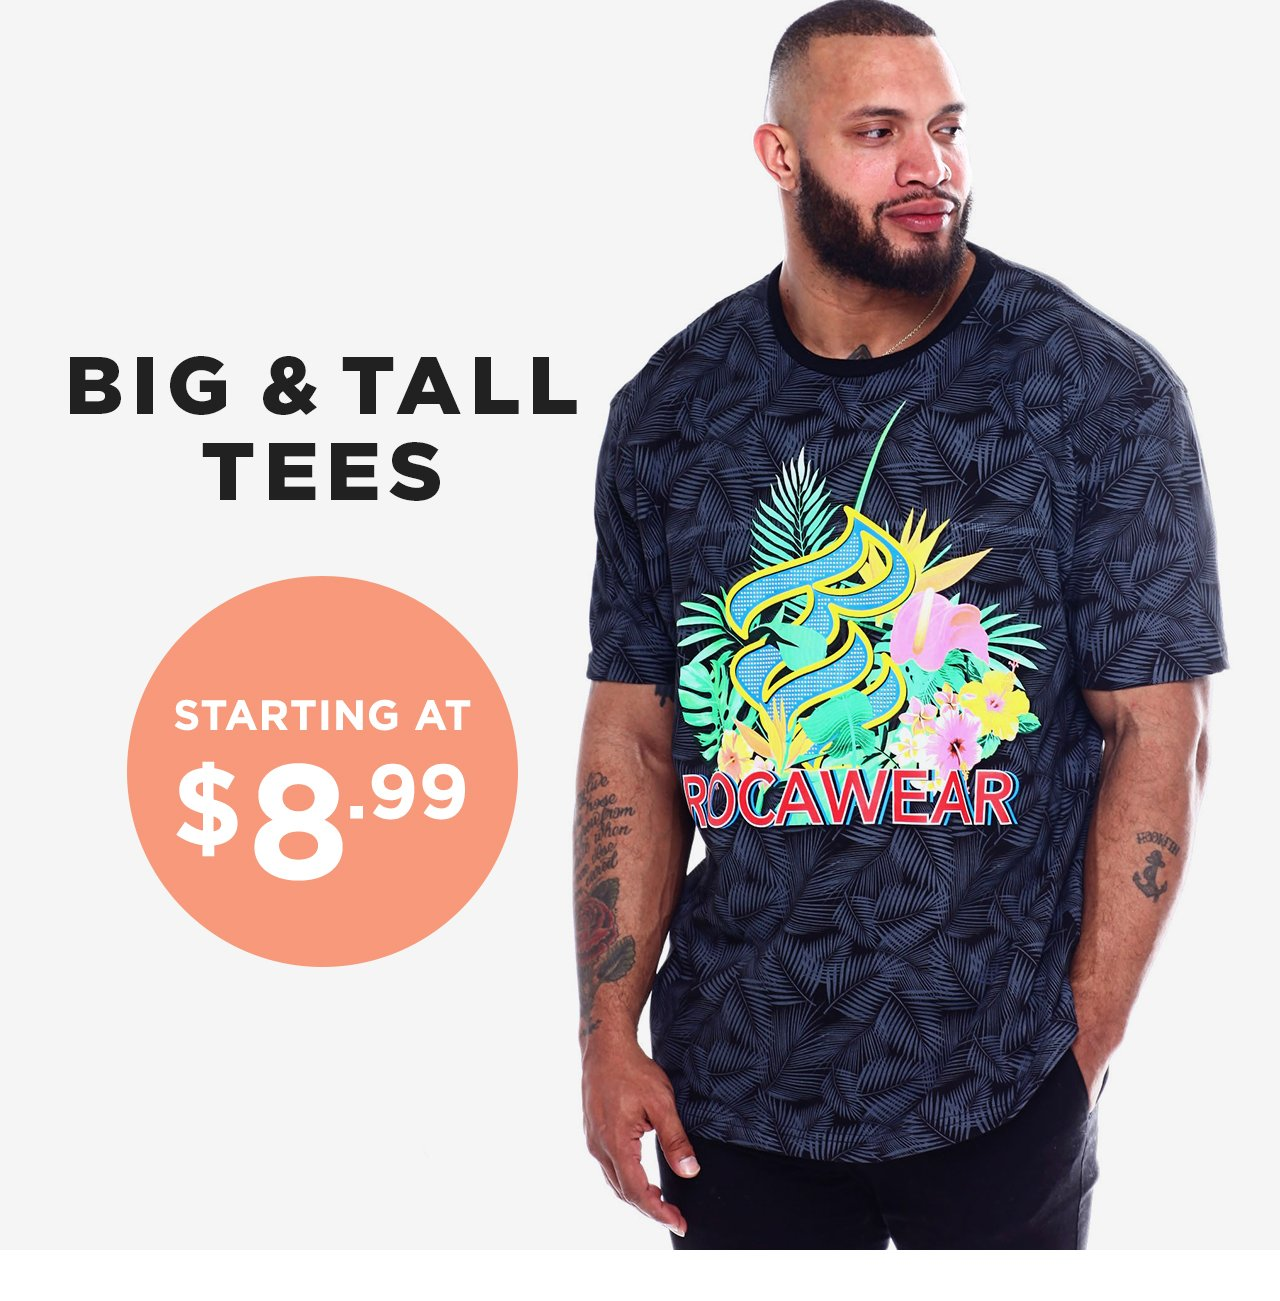 Shop Big and Tall Tees starting at $8.99